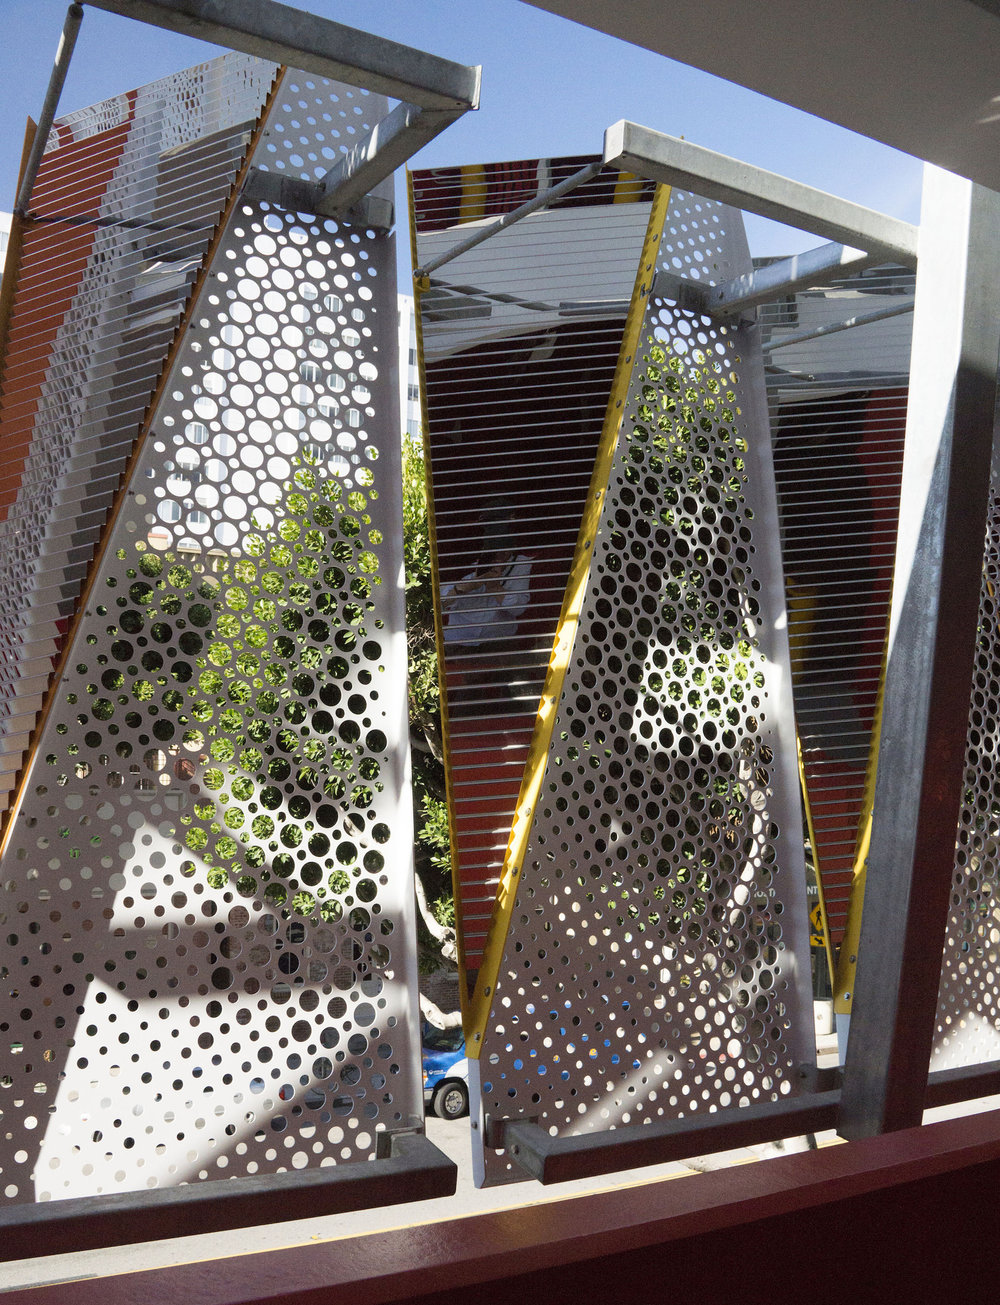 2011 LEED Gold Award - 2011 LEED Gold Award, City of Santa Monica Parking Structure 6